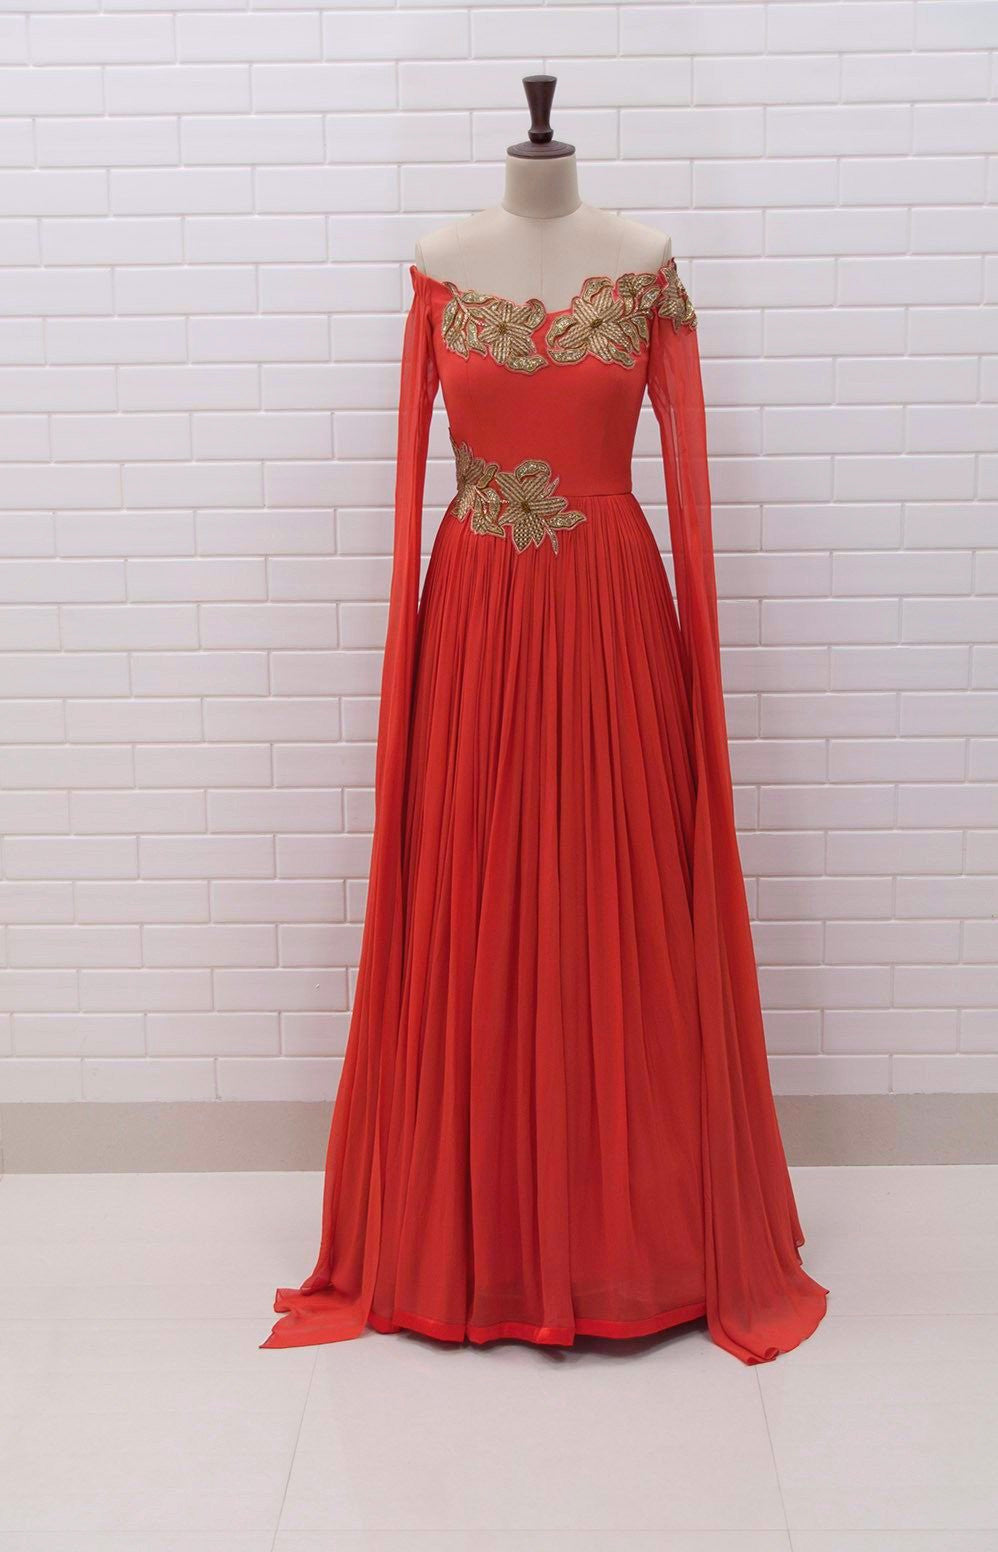 TAZIA : Rust coloured off shoulder long drape sleeves gown with Zardozi embroidery